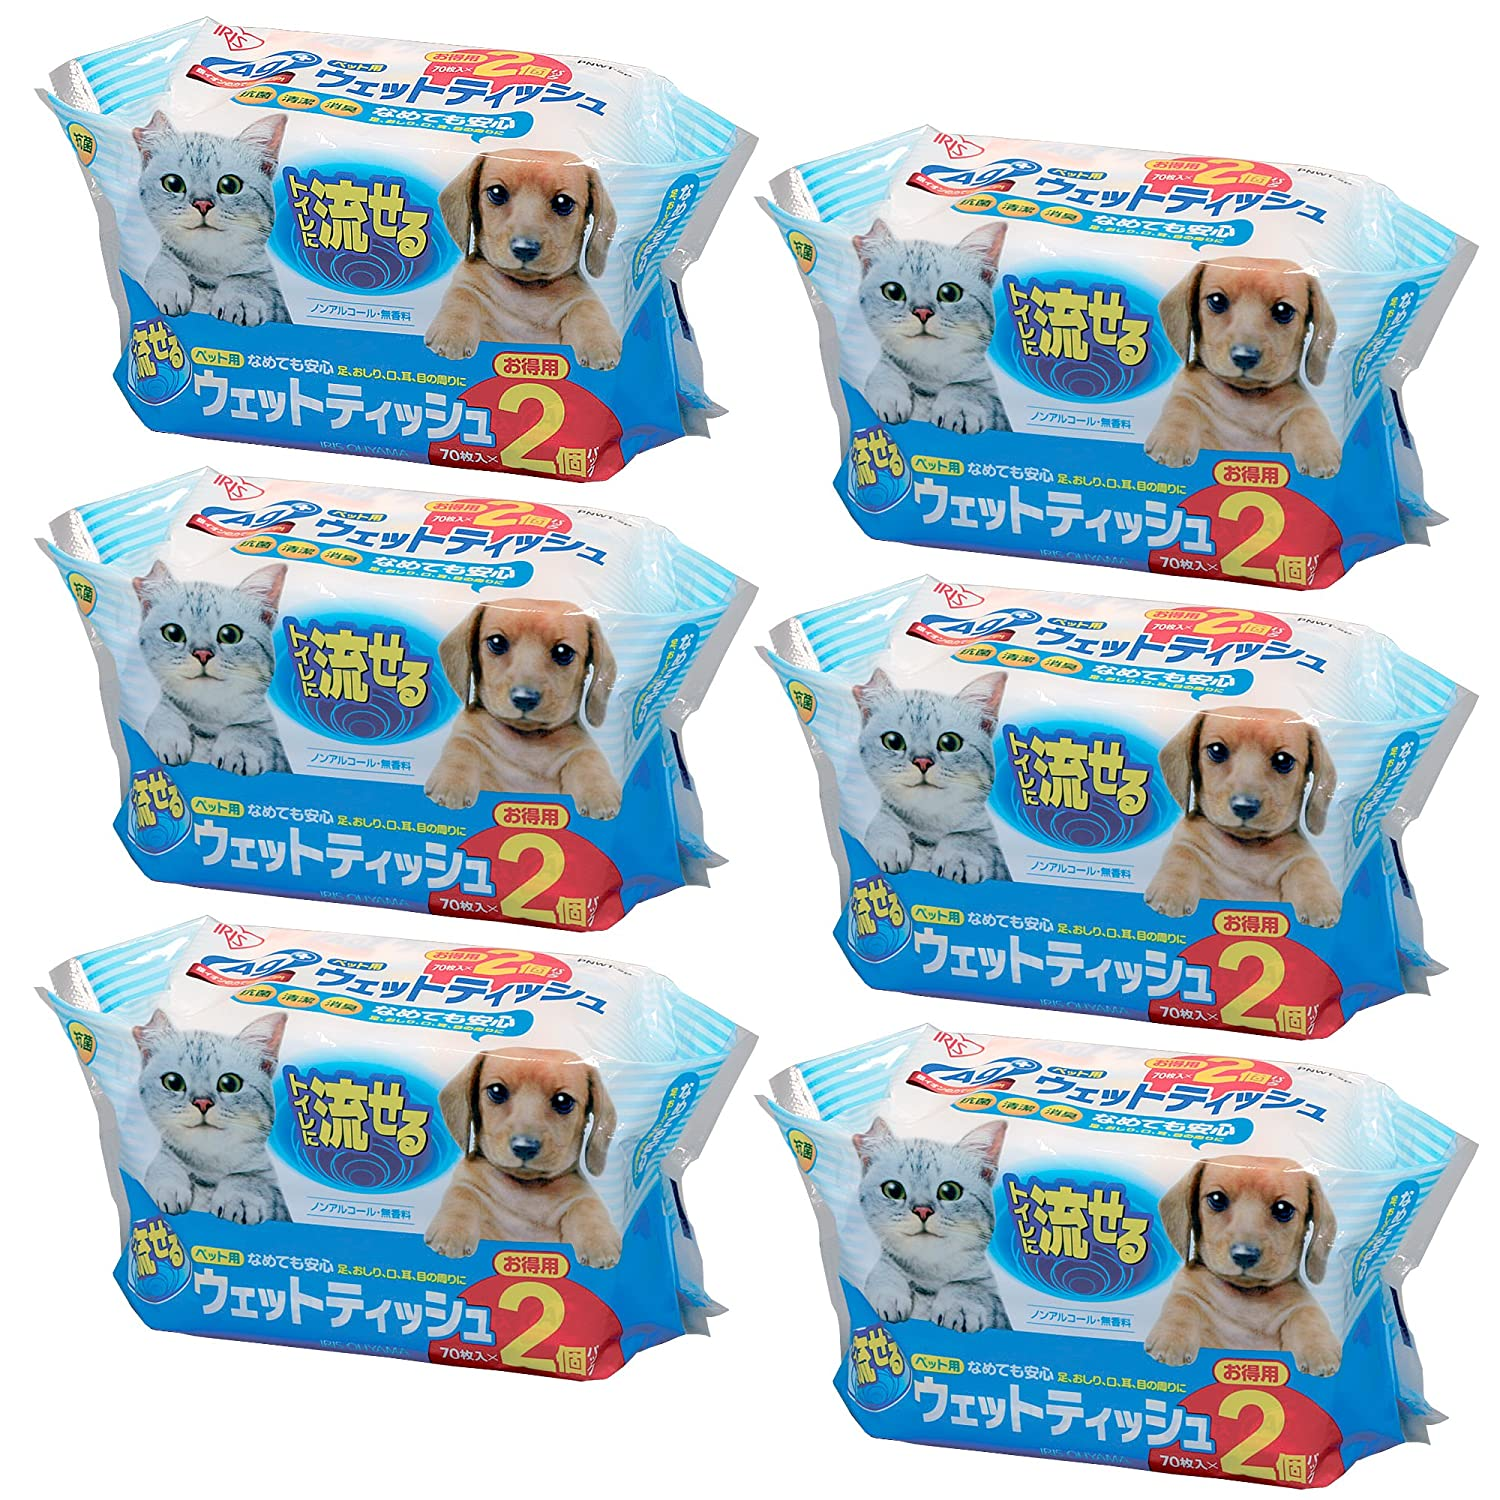 Iris pet wet tissue (70 pieces × 2-pack) which can be passed for × 6 pieces